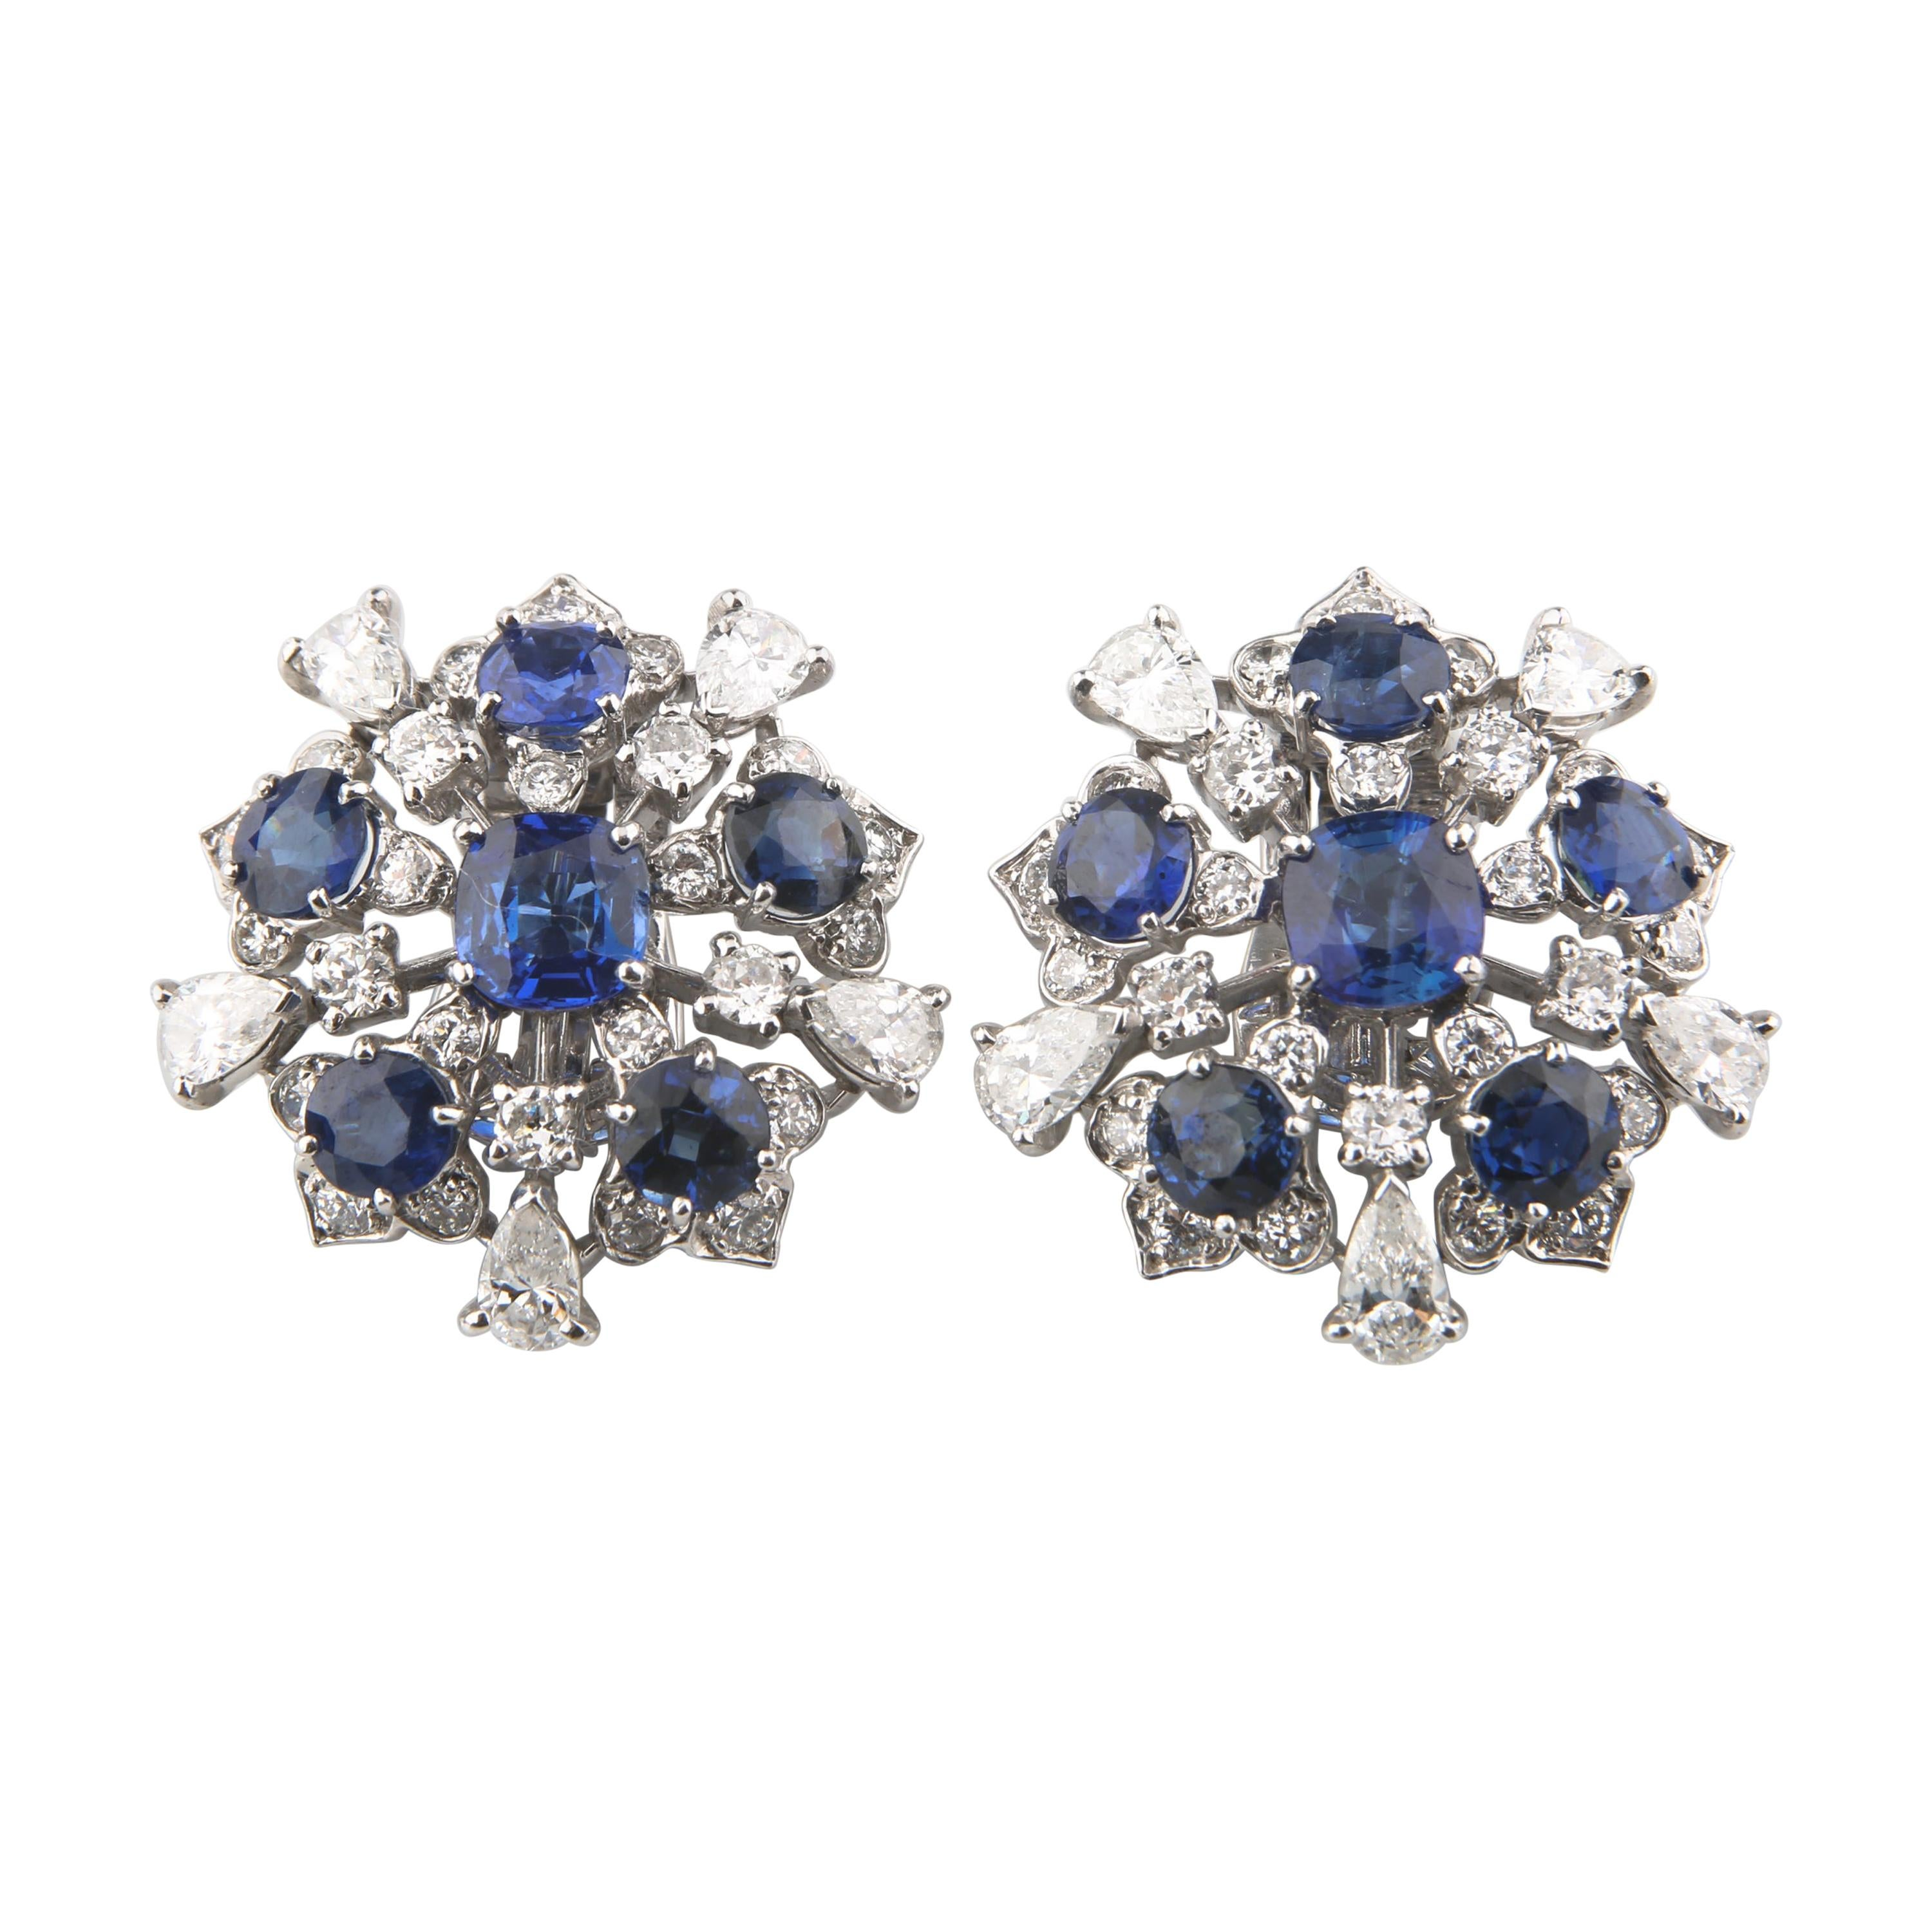 11.60 Carat Blue Sapphire and Diamond 18k White Gold Cluster Earrings